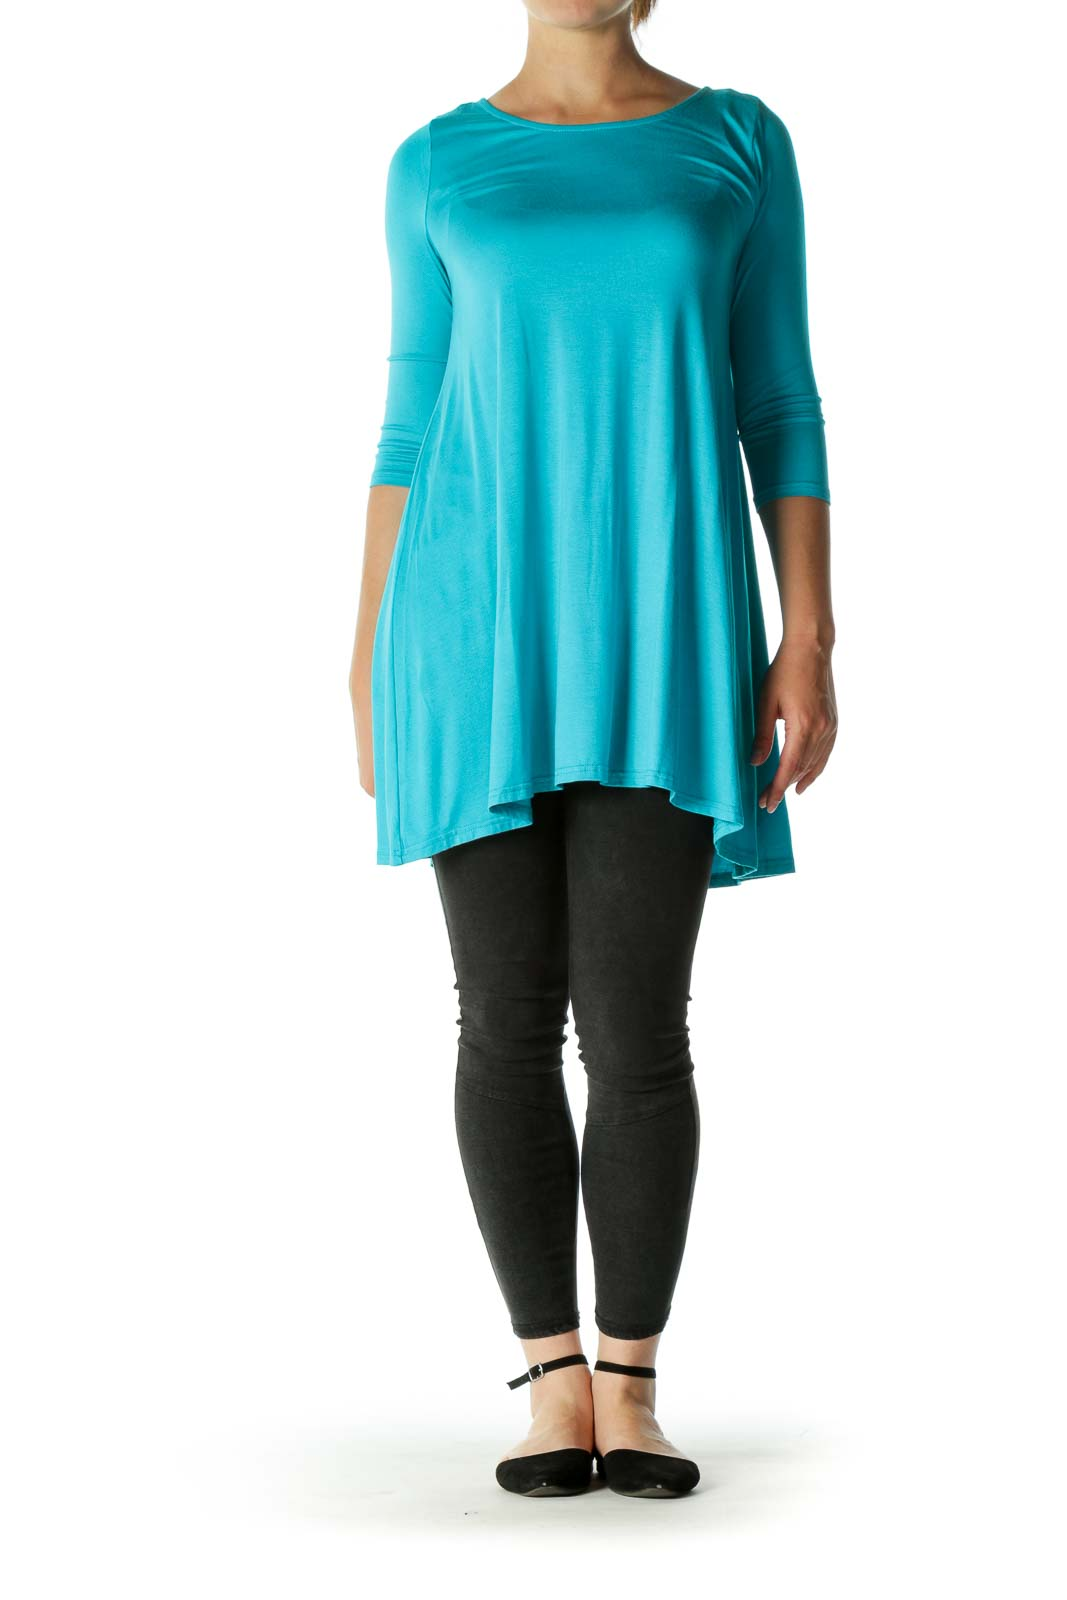 Blue Back Upper Cut-Out 3/4 Sleeve Jersey Fabric Top